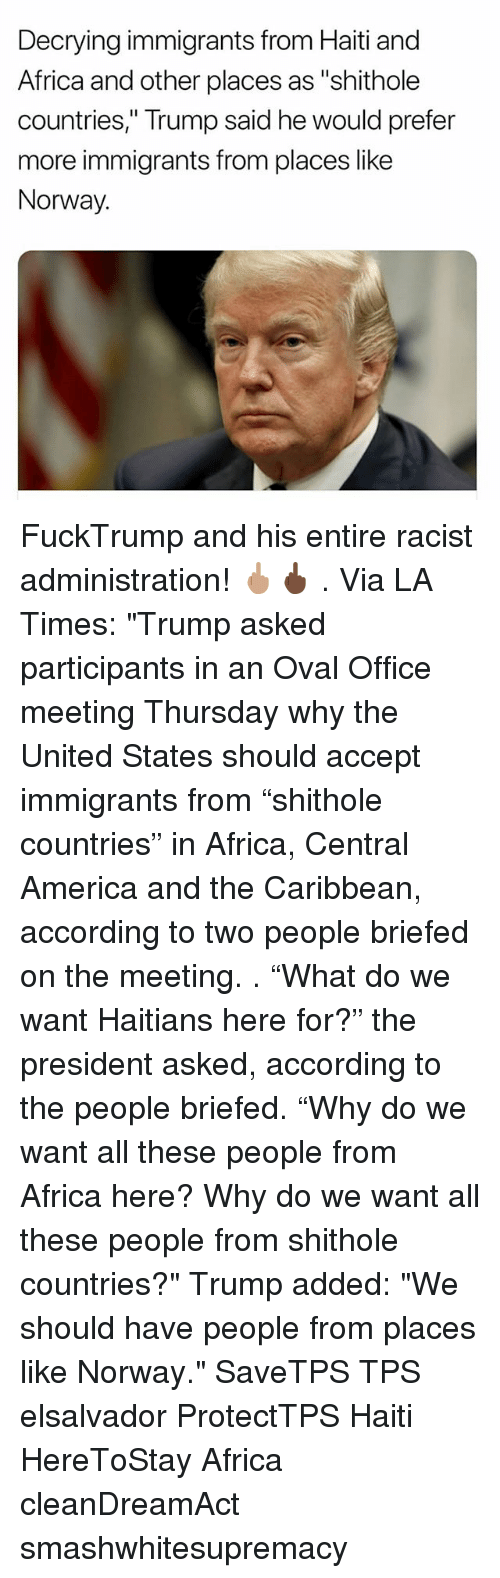 "Africa, America, and Memes: Decrying immigrants from Haiti and  Africa and other places as ""shithole  countries,"" Trump said he would prefer  more immigrants from places like  Norway. FuckTrump and his entire racist administration! 🖕🏽🖕🏿 . Via LA Times: ""Trump asked participants in an Oval Office meeting Thursday why the United States should accept immigrants from ""shithole countries"" in Africa, Central America and the Caribbean, according to two people briefed on the meeting. . ""What do we want Haitians here for?"" the president asked, according to the people briefed. ""Why do we want all these people from Africa here? Why do we want all these people from shithole countries?"" Trump added: ""We should have people from places like Norway."" SaveTPS TPS elsalvador ProtectTPS Haiti HereToStay Africa cleanDreamAct smashwhitesupremacy"